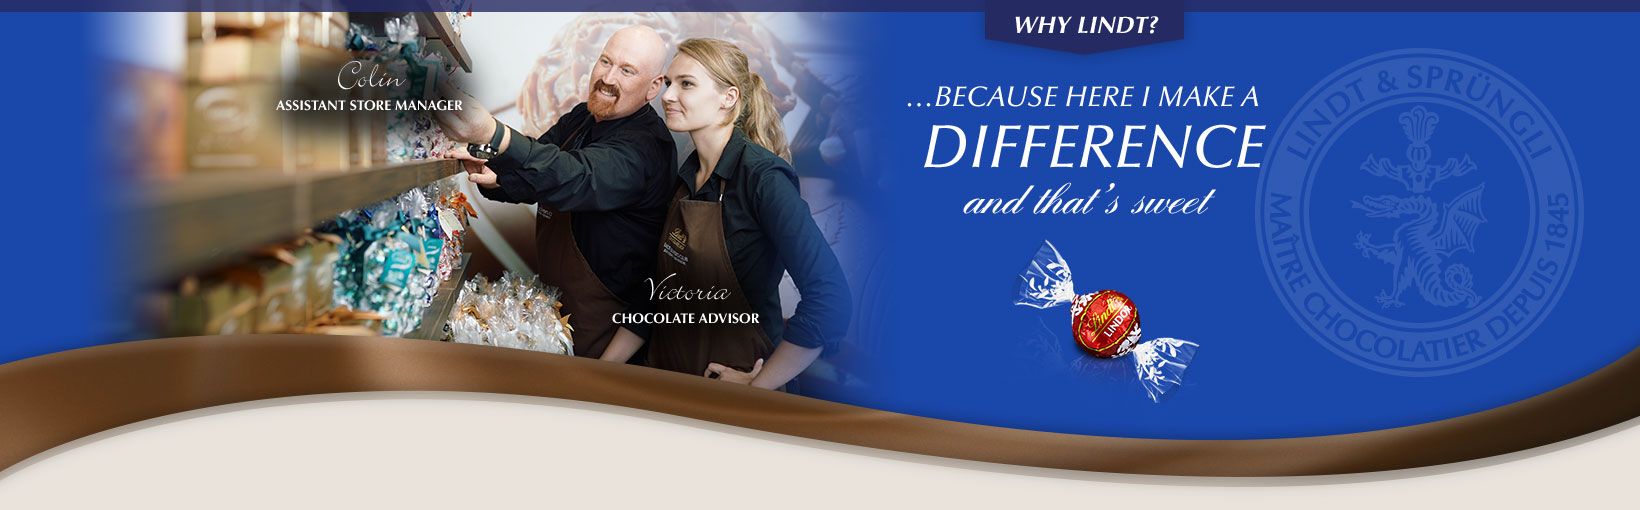 Why Lindt? …Because here I make a difference and that's sweet. Colin, Assistant Store Manager and Victoria, Chocolate Advisor